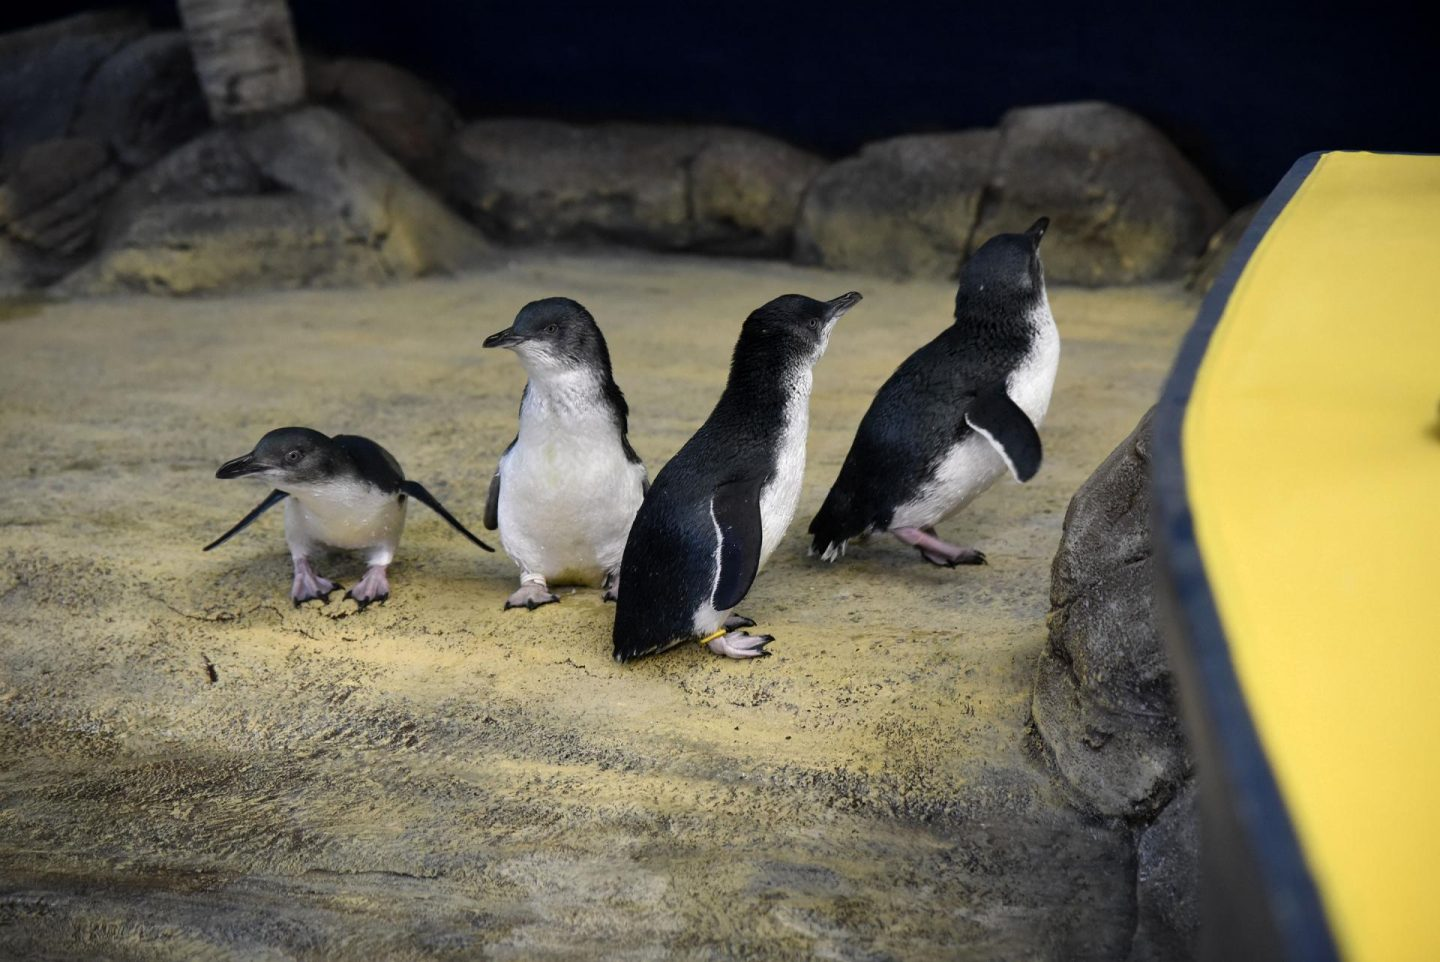 Meeting new faces at Weymouth Sea Life Adventure Park